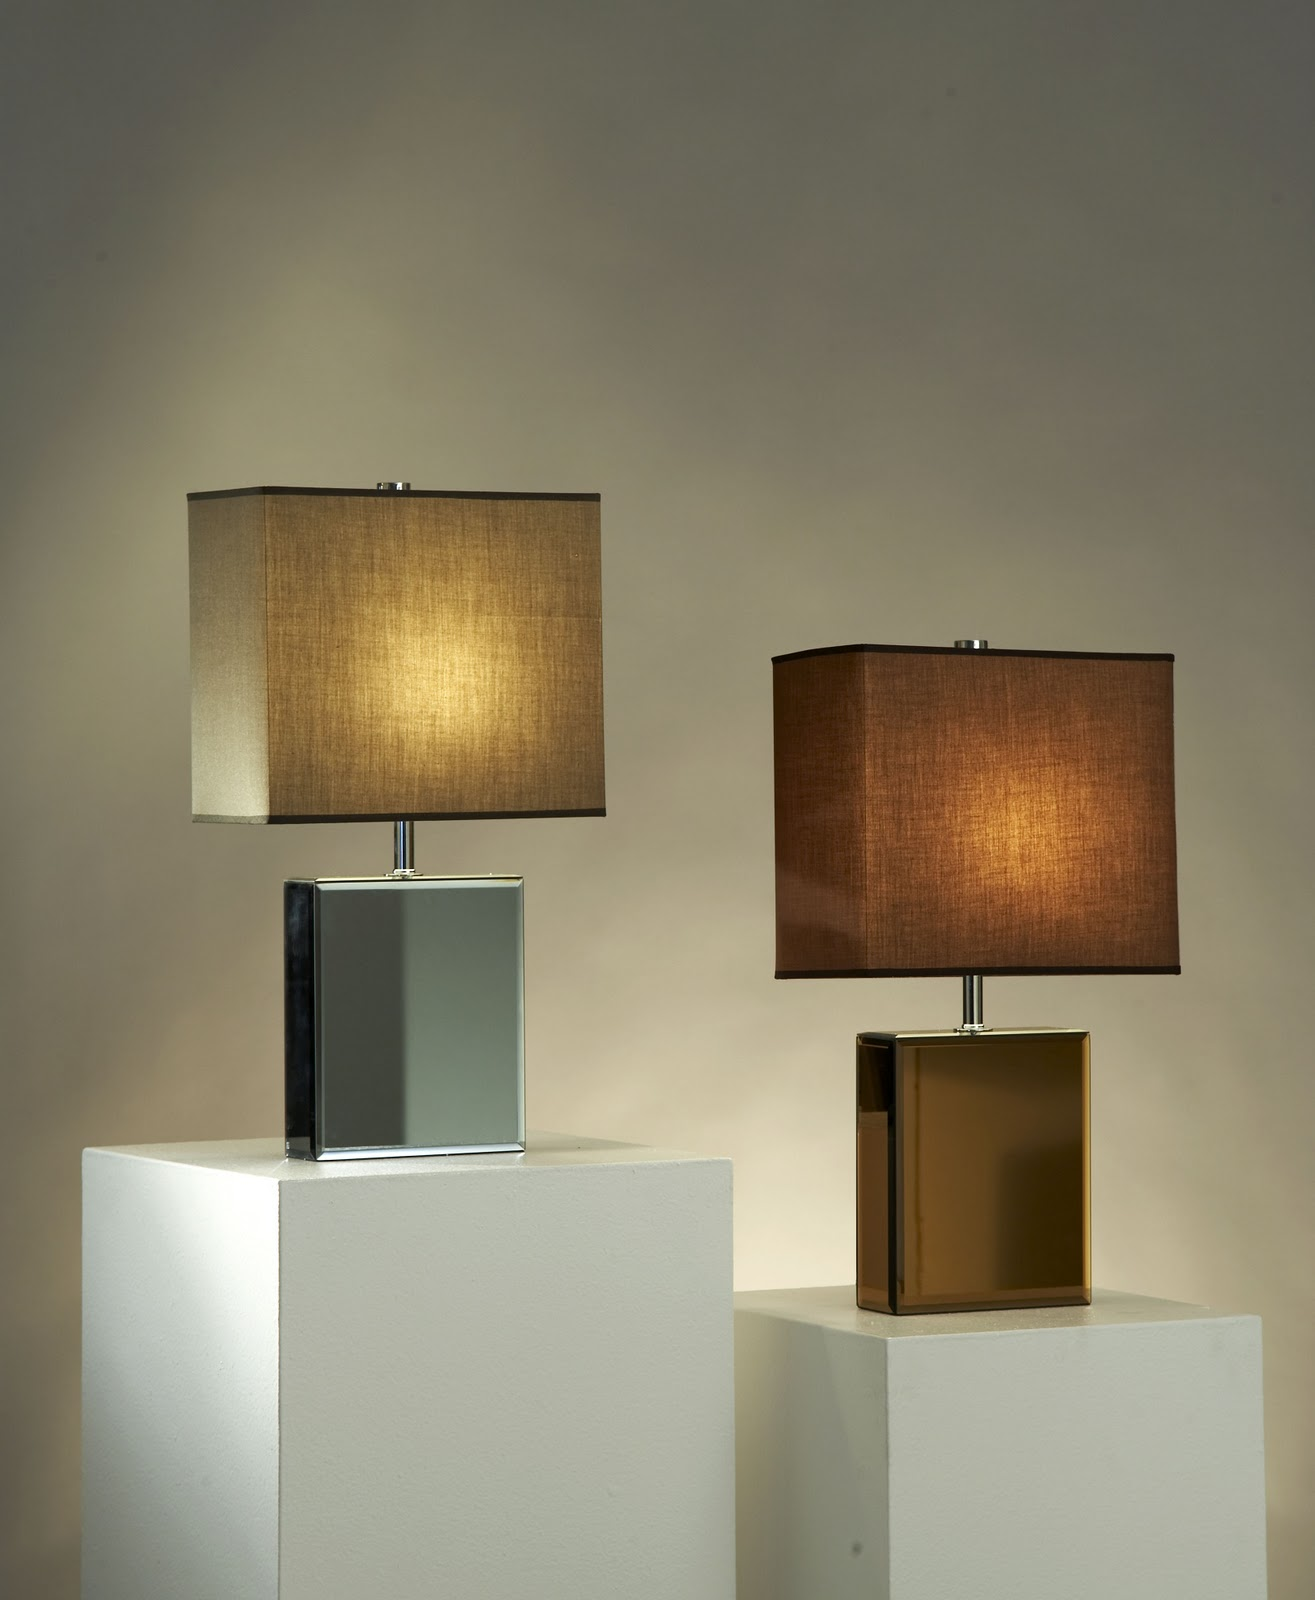 Gift & Home Today: New lamps, new showroom in Las Vegas